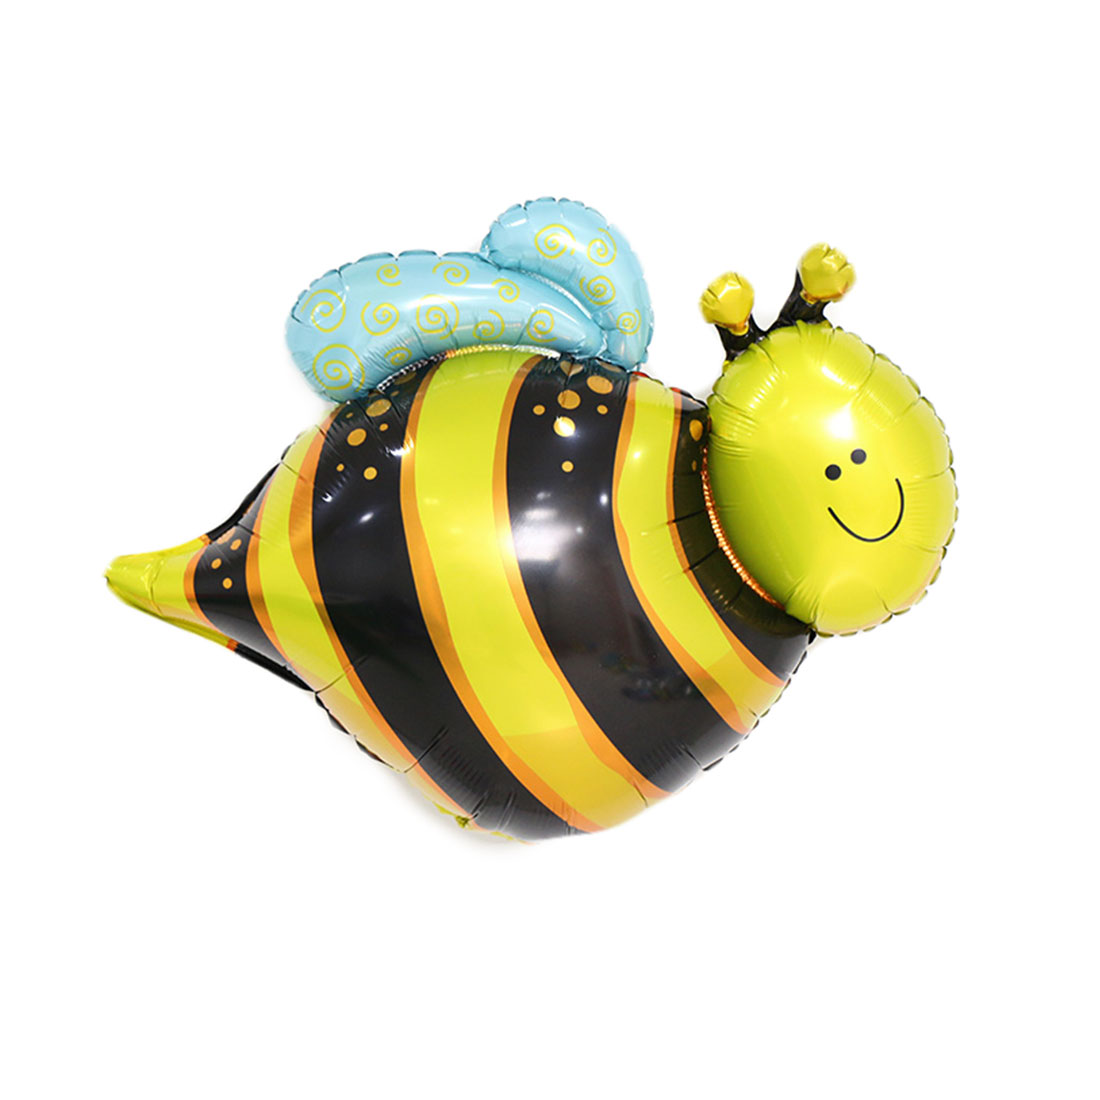 Foil Bee Design Inflation Helium Balloon Birthday Festival Celebration Anniversary Ornament 11 Inch